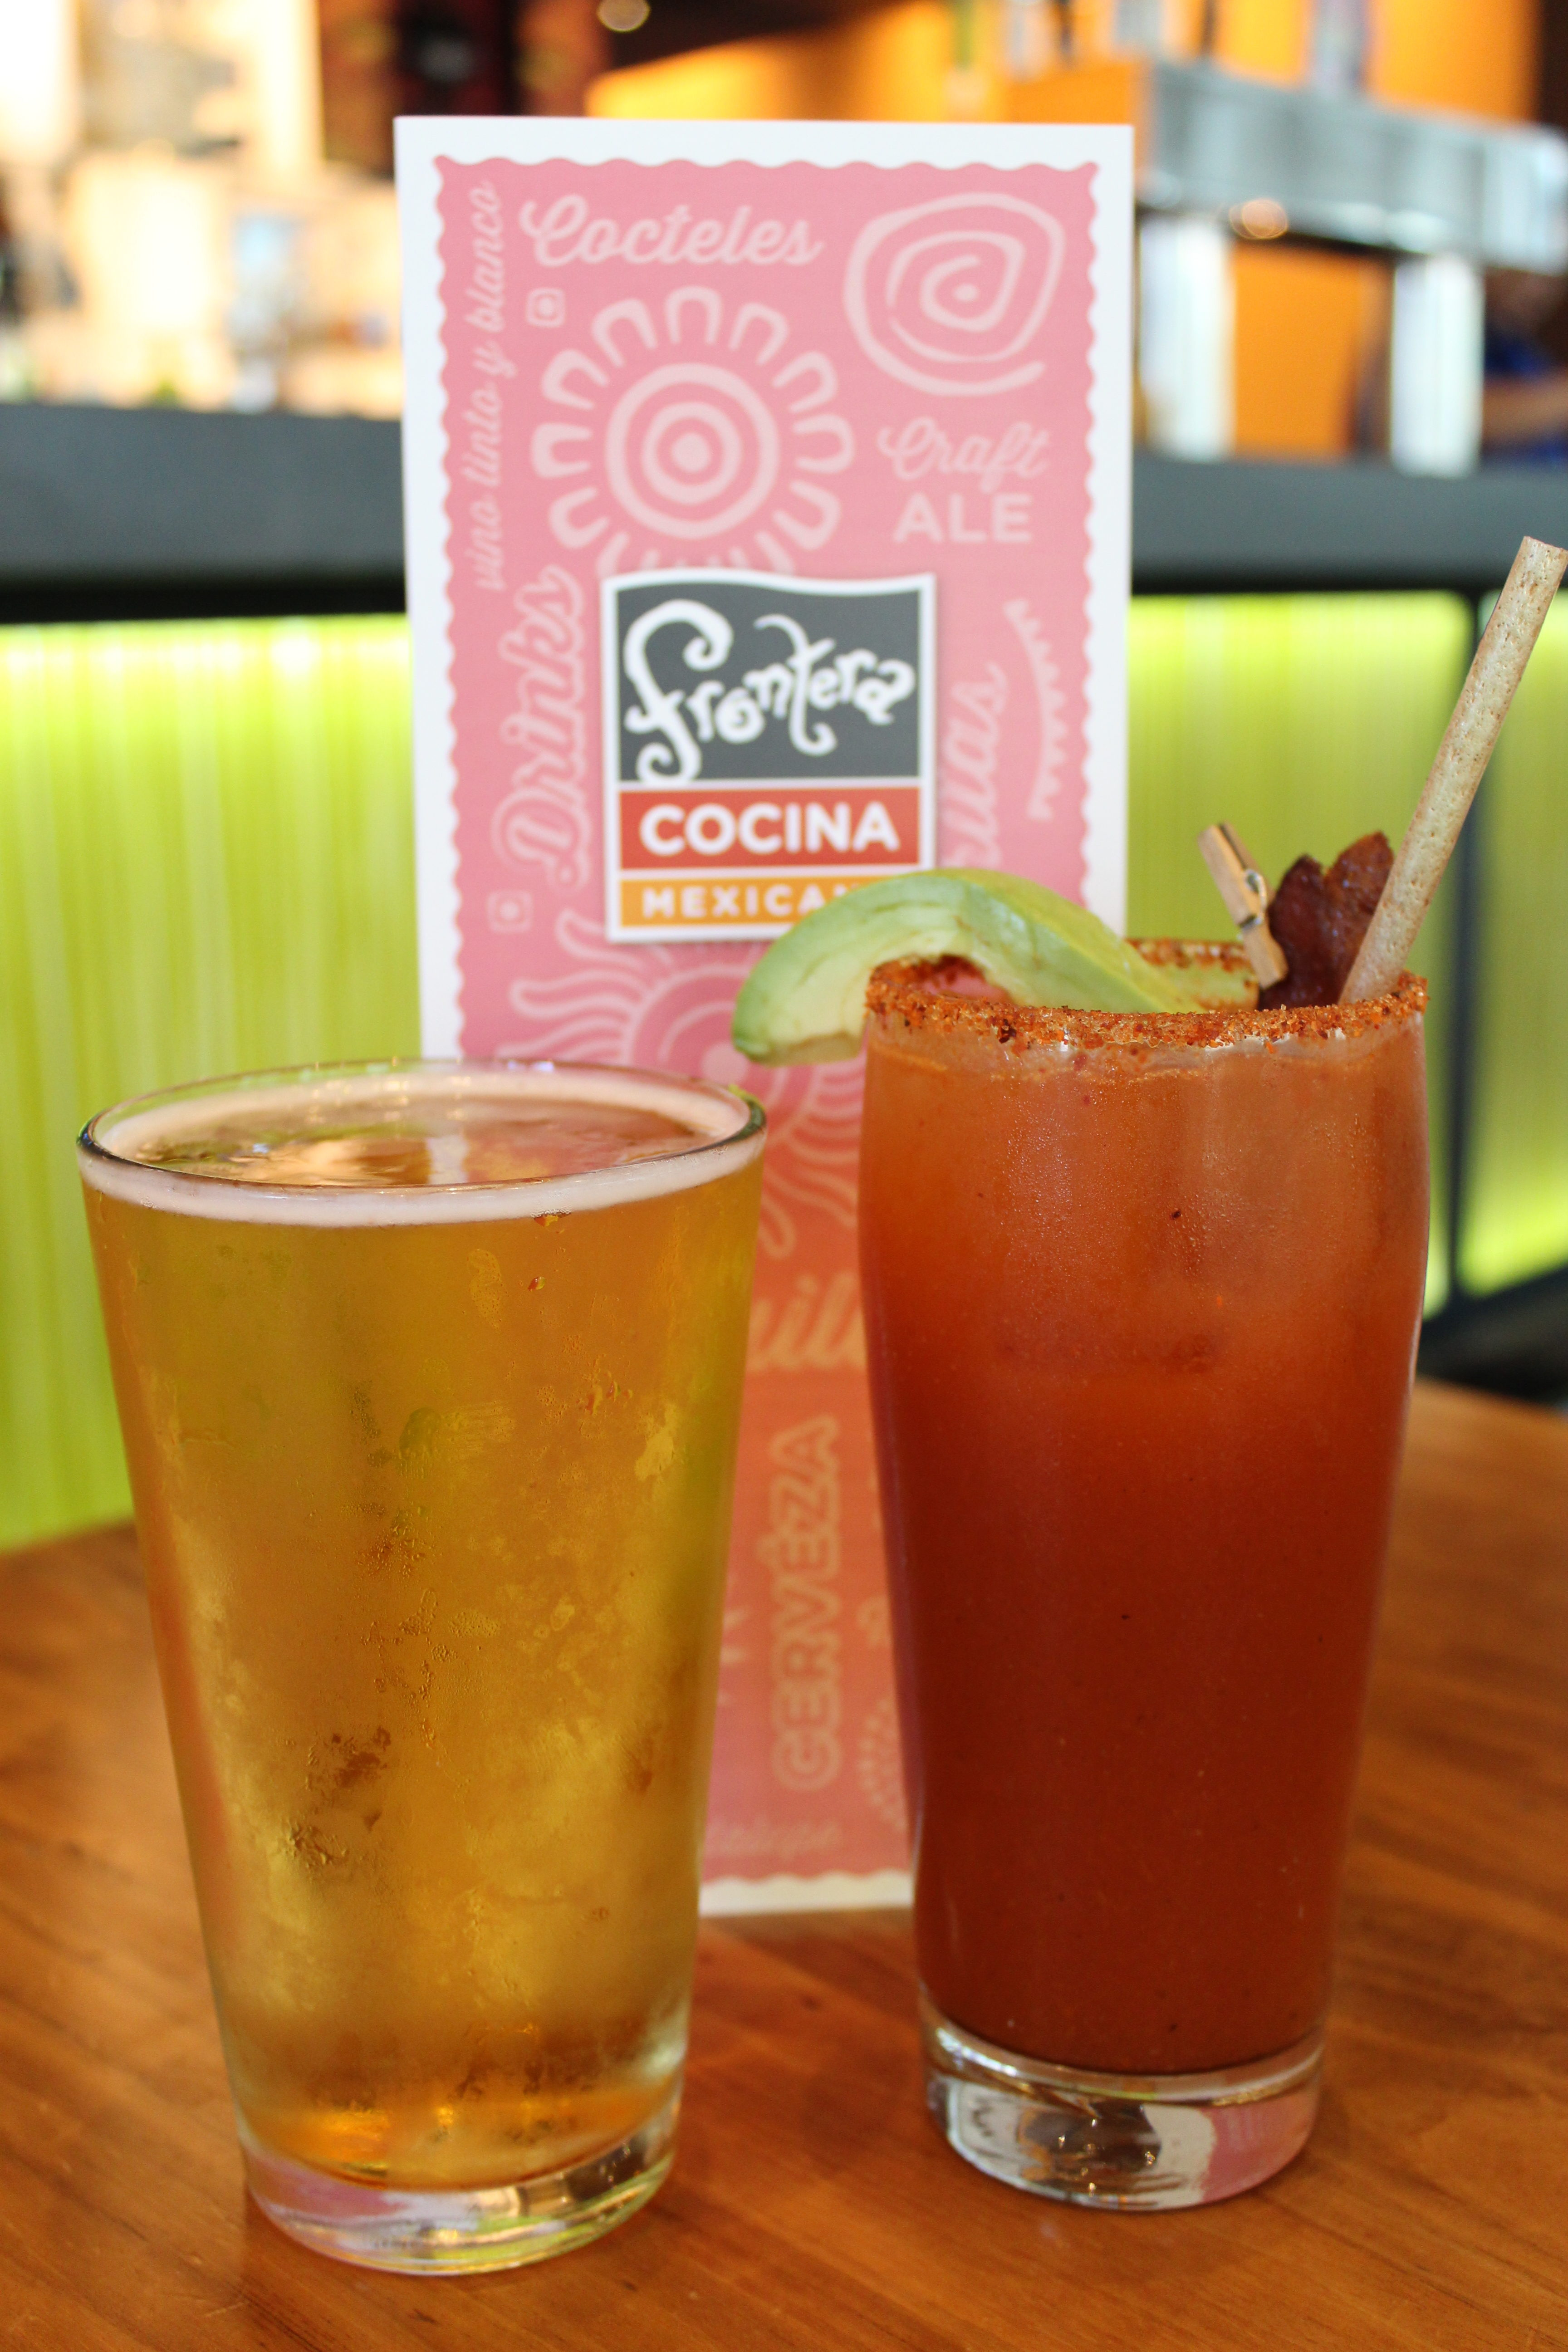 pint of beer and a glass of bloody mary